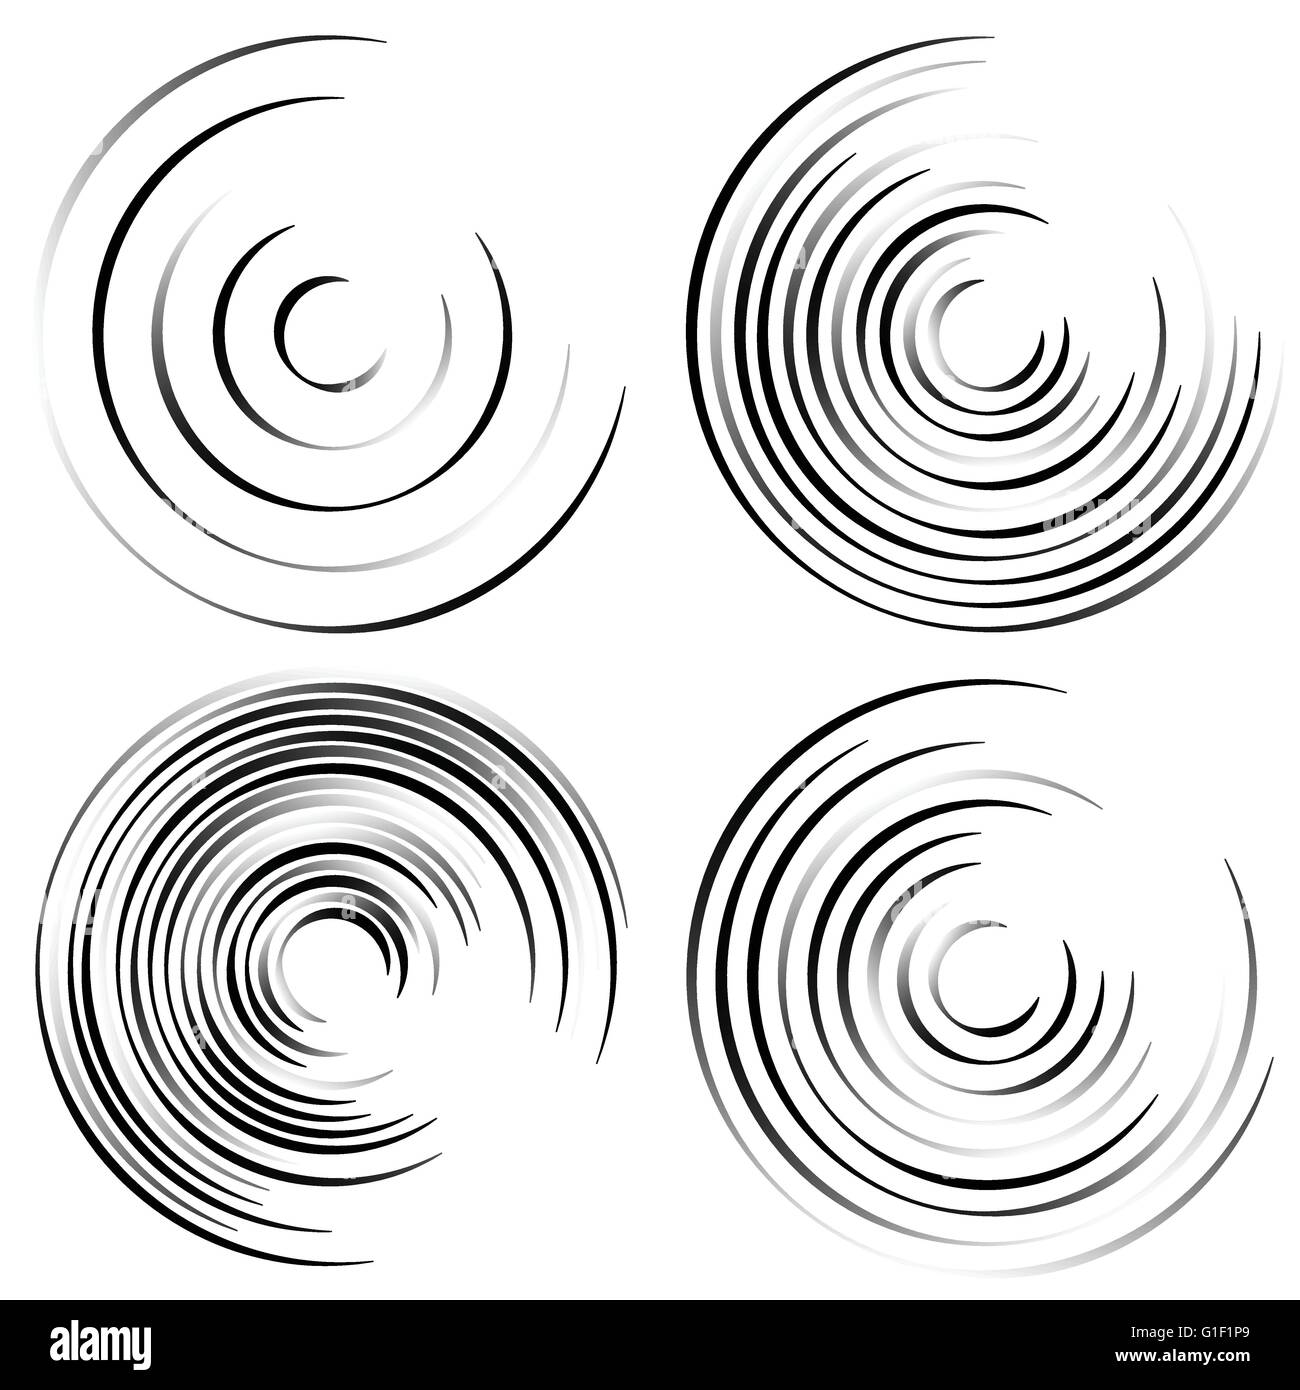 Abstract spiral shapes - Spirally, whirling circular element set. - Stock Image